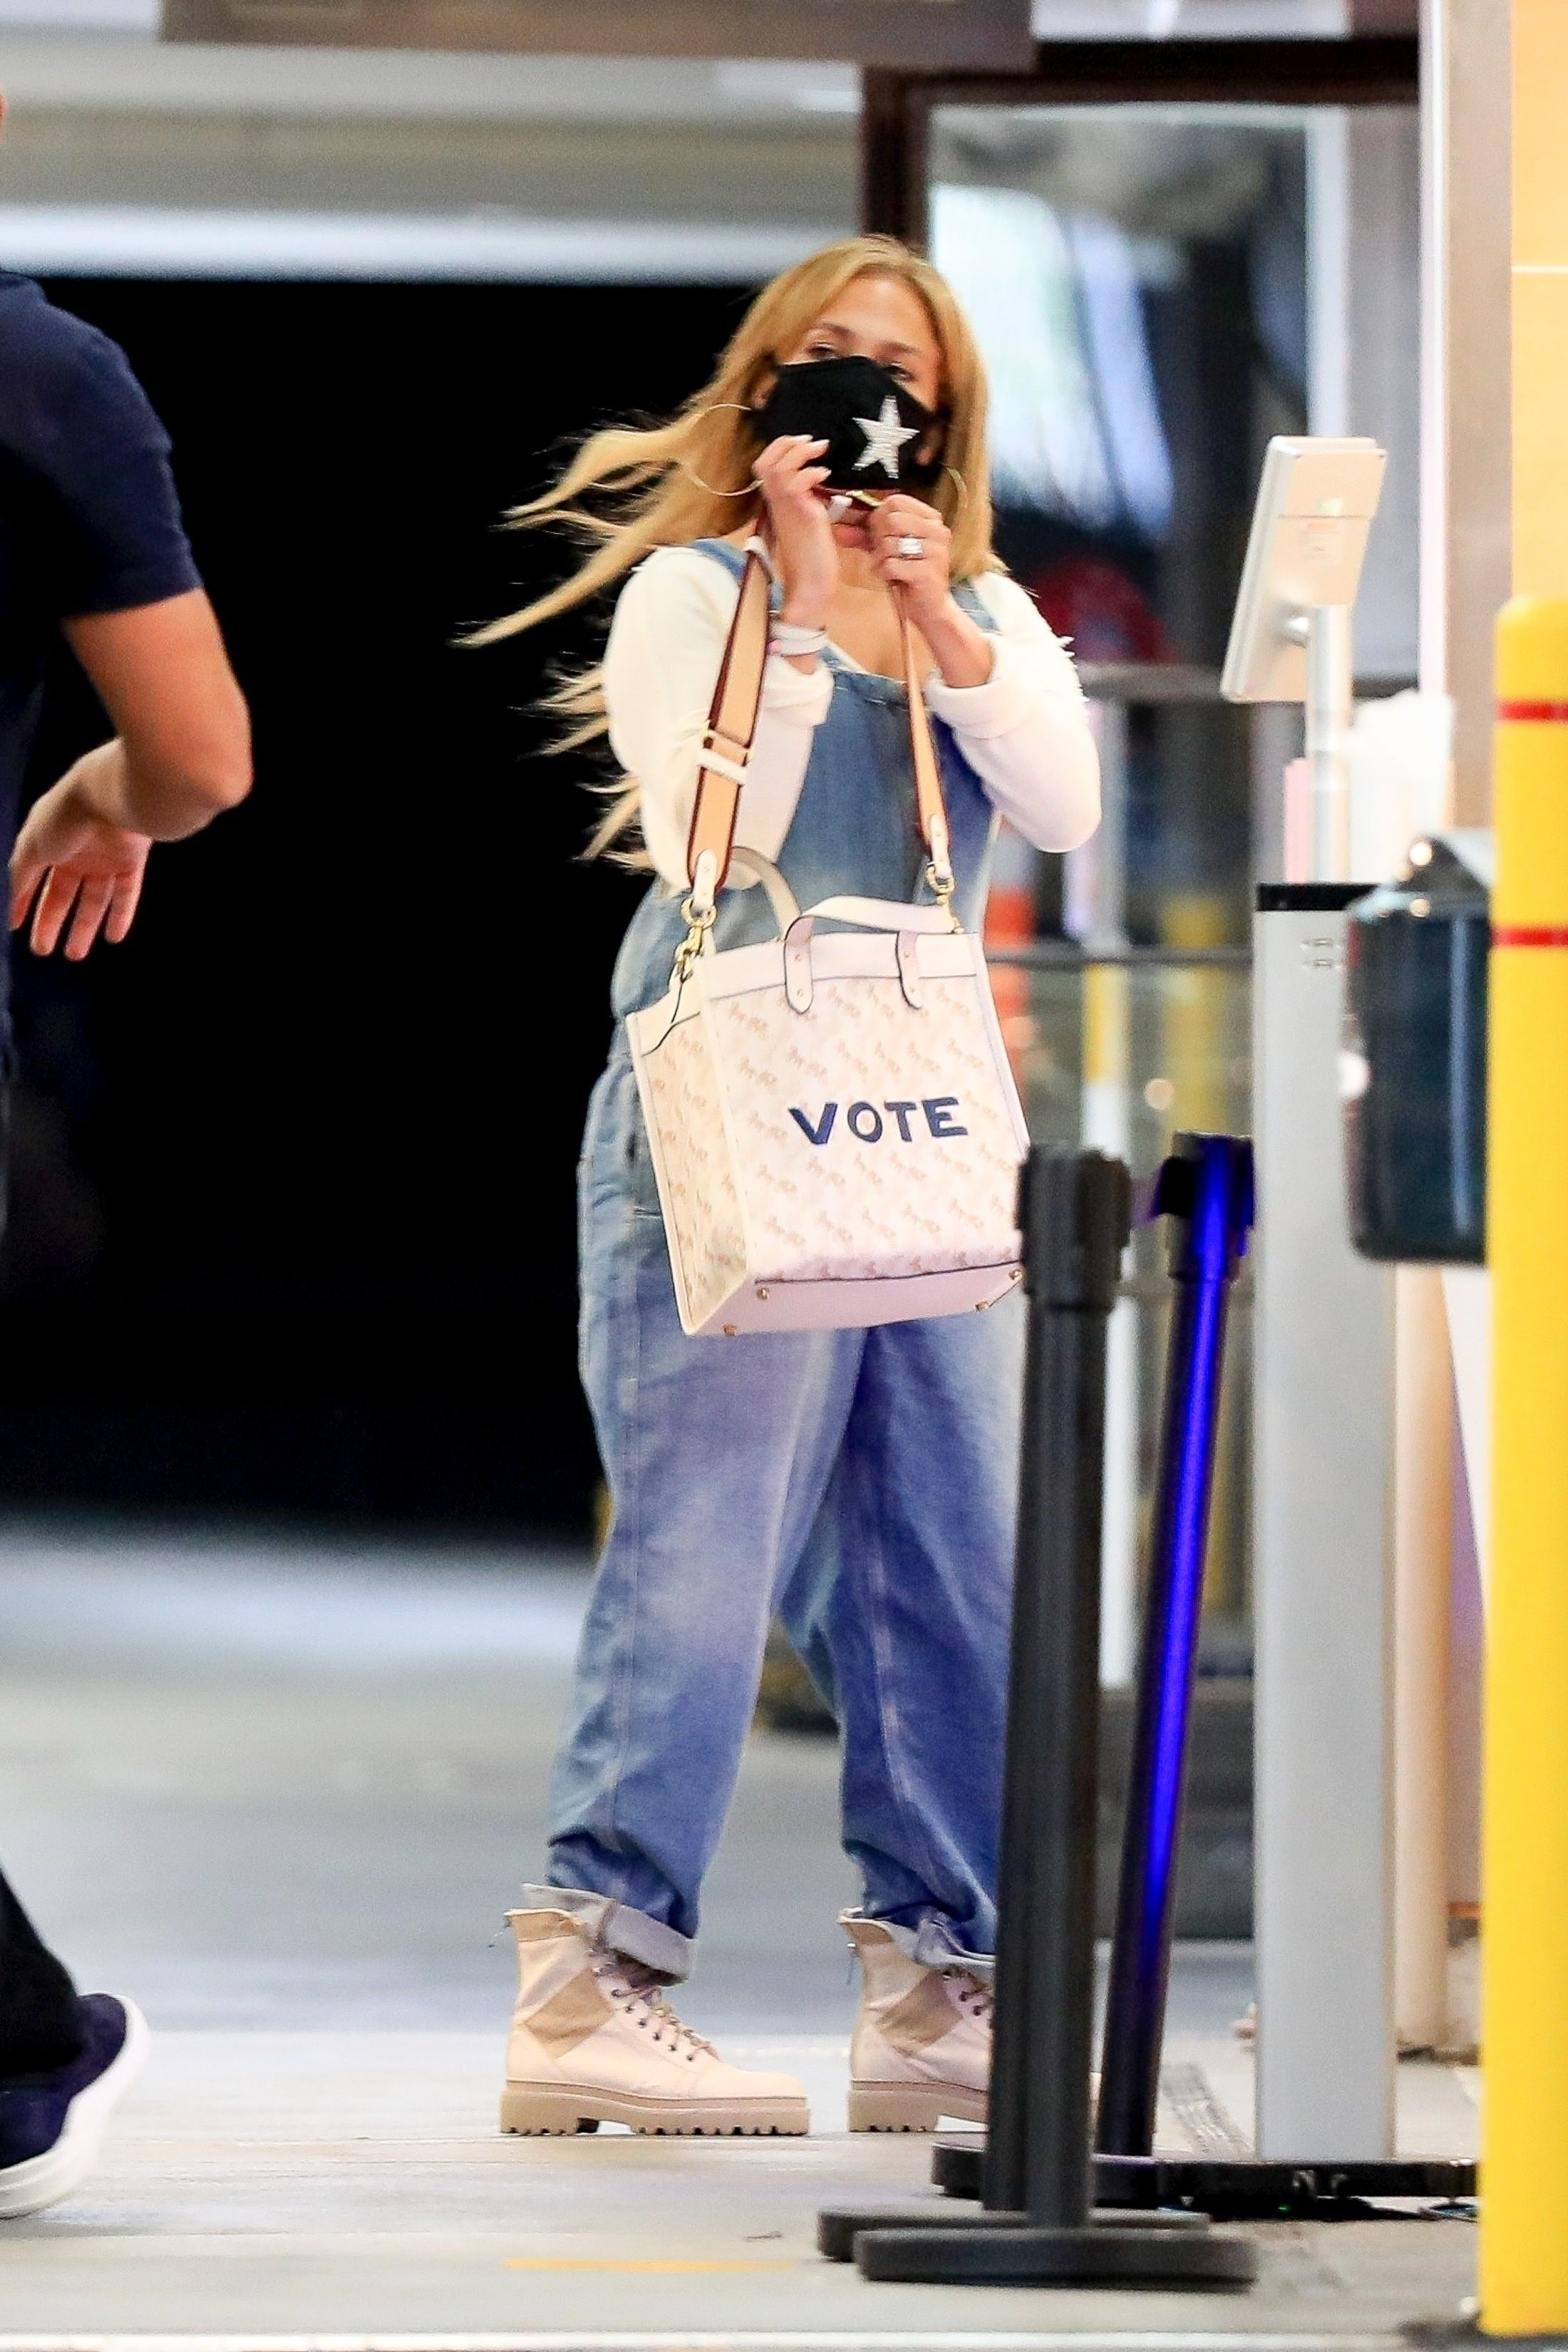 Jennifer Lopez Steps Out In Combat Boots And A Coach Vote Bag